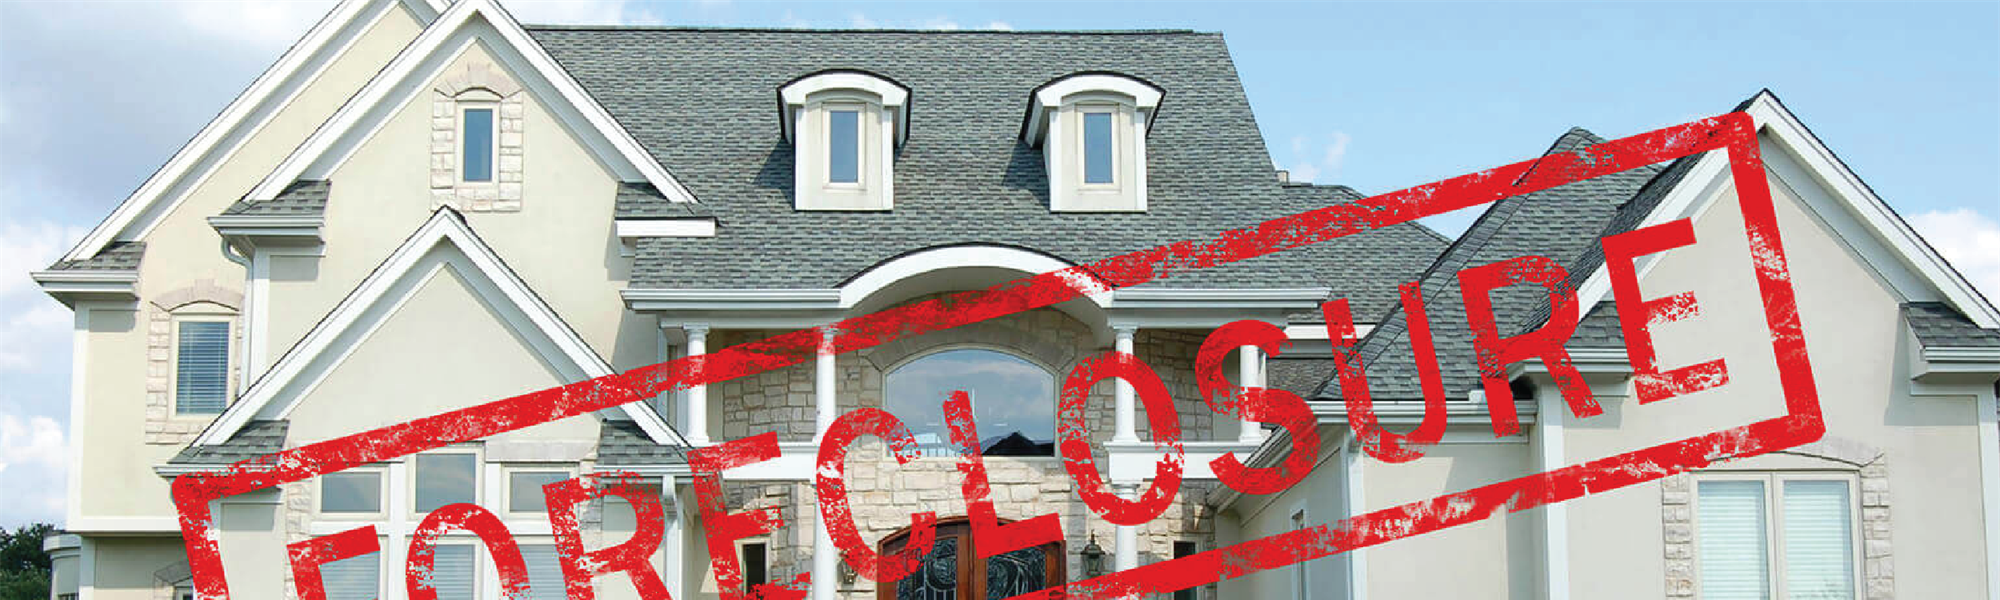 Foreclosures & REO Sales